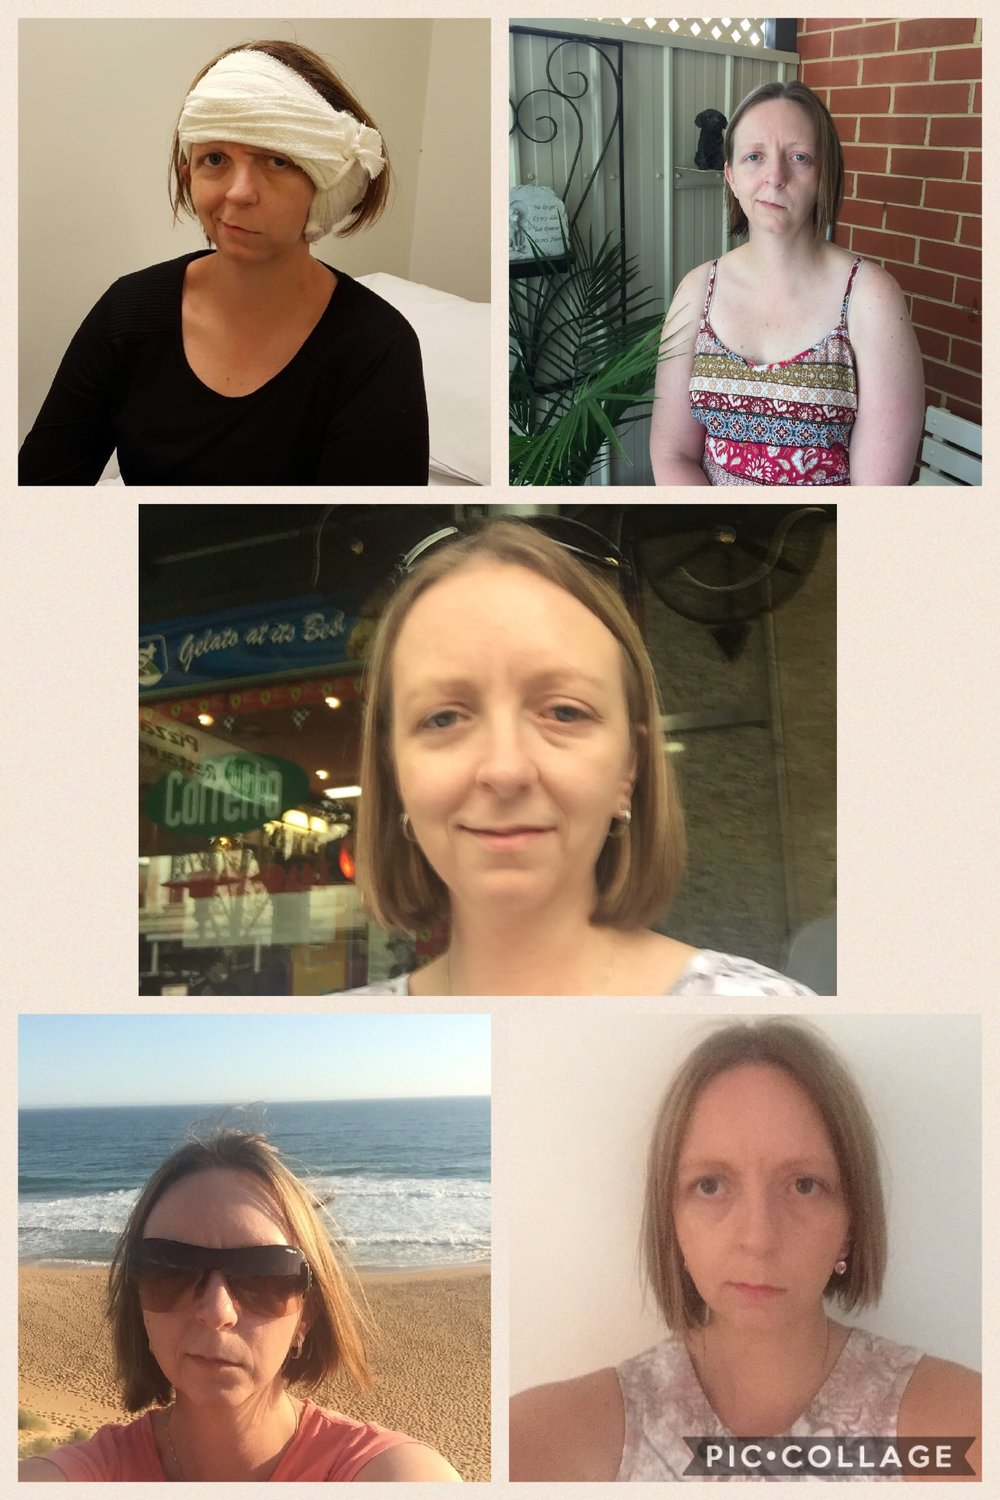 My journey... top left 1 week post op, top right 4 weeks, middle now, bottom left 5 weeks and bottom right 7 weeks.